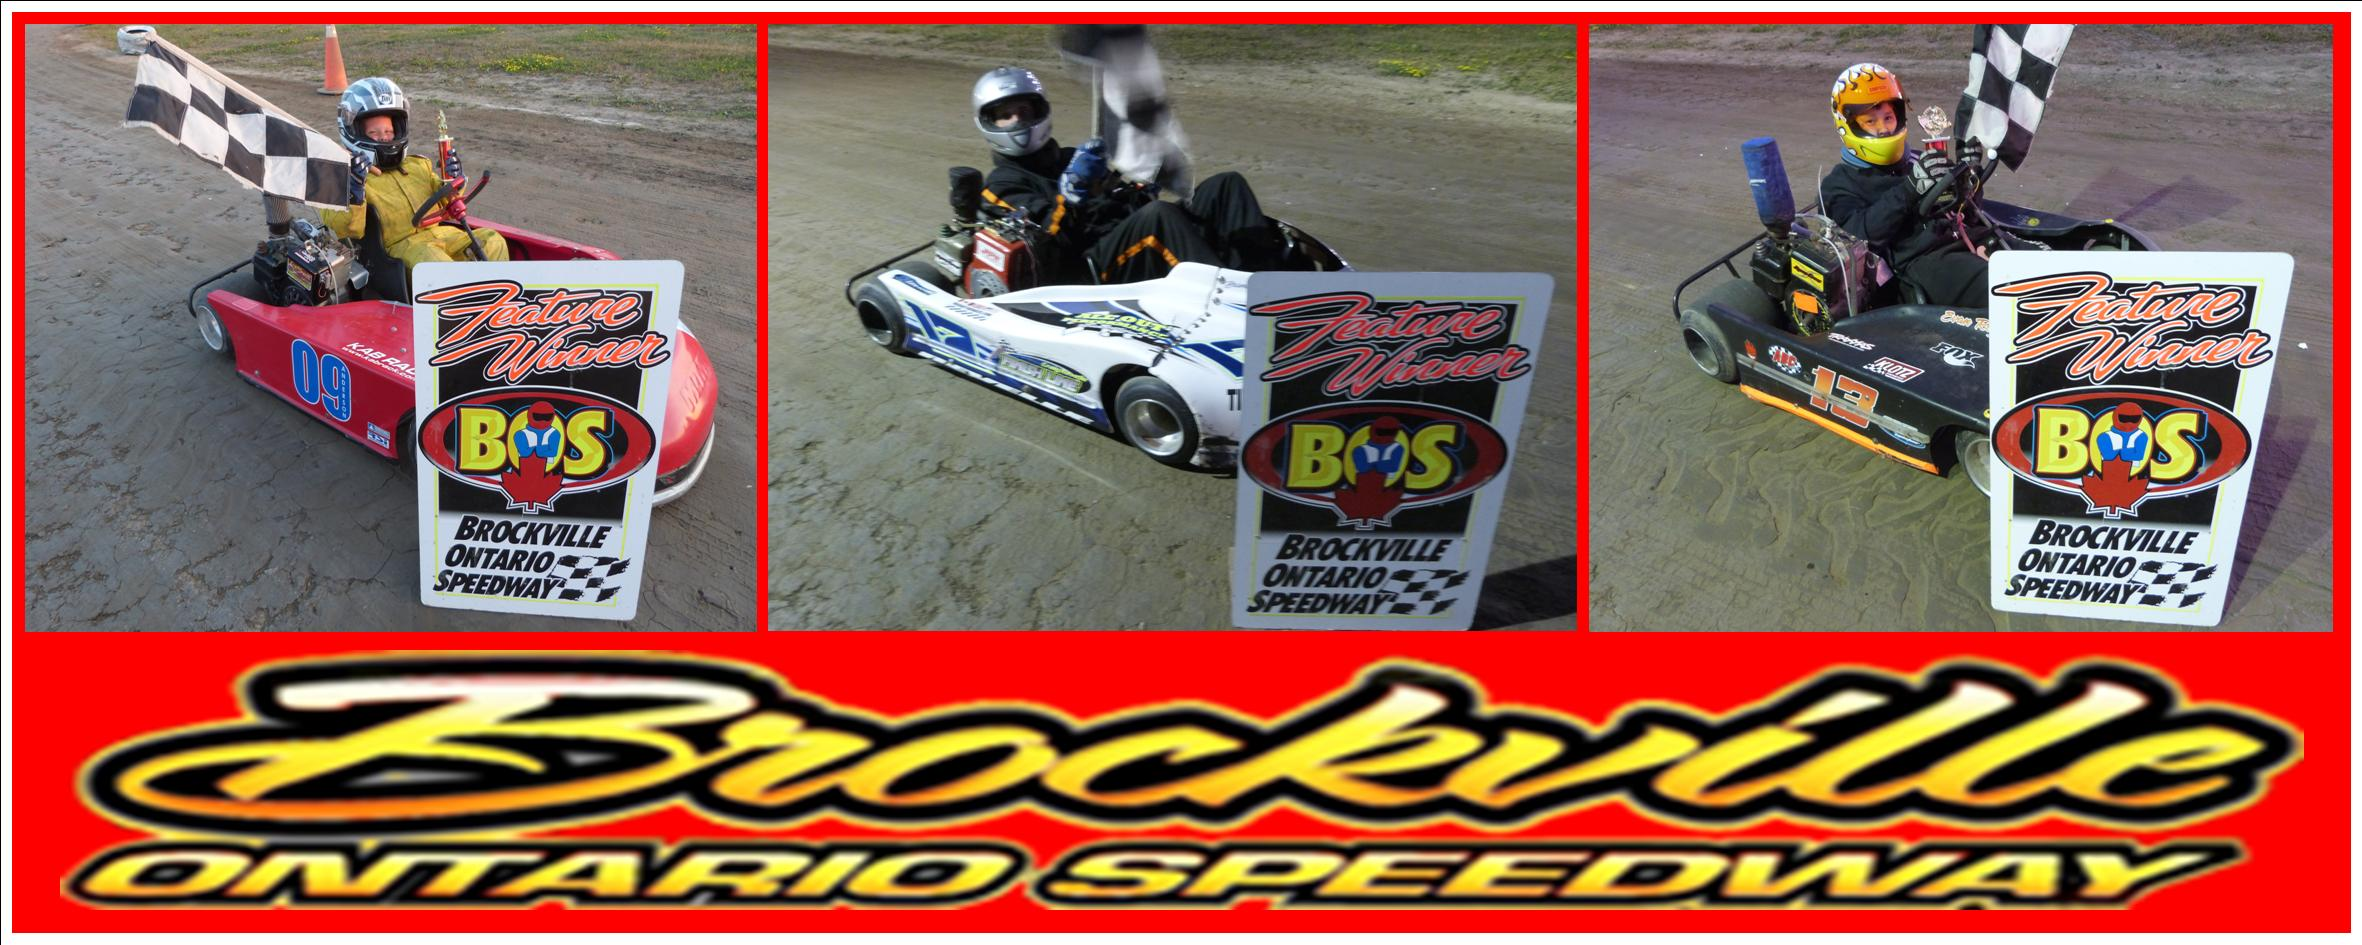 ANDERSON AND REVELLE SCORE FIRST EVER WINS WHILE EVAN REYNOLDS FINALLY BREAKS THROUGH AT BROCKVILLE